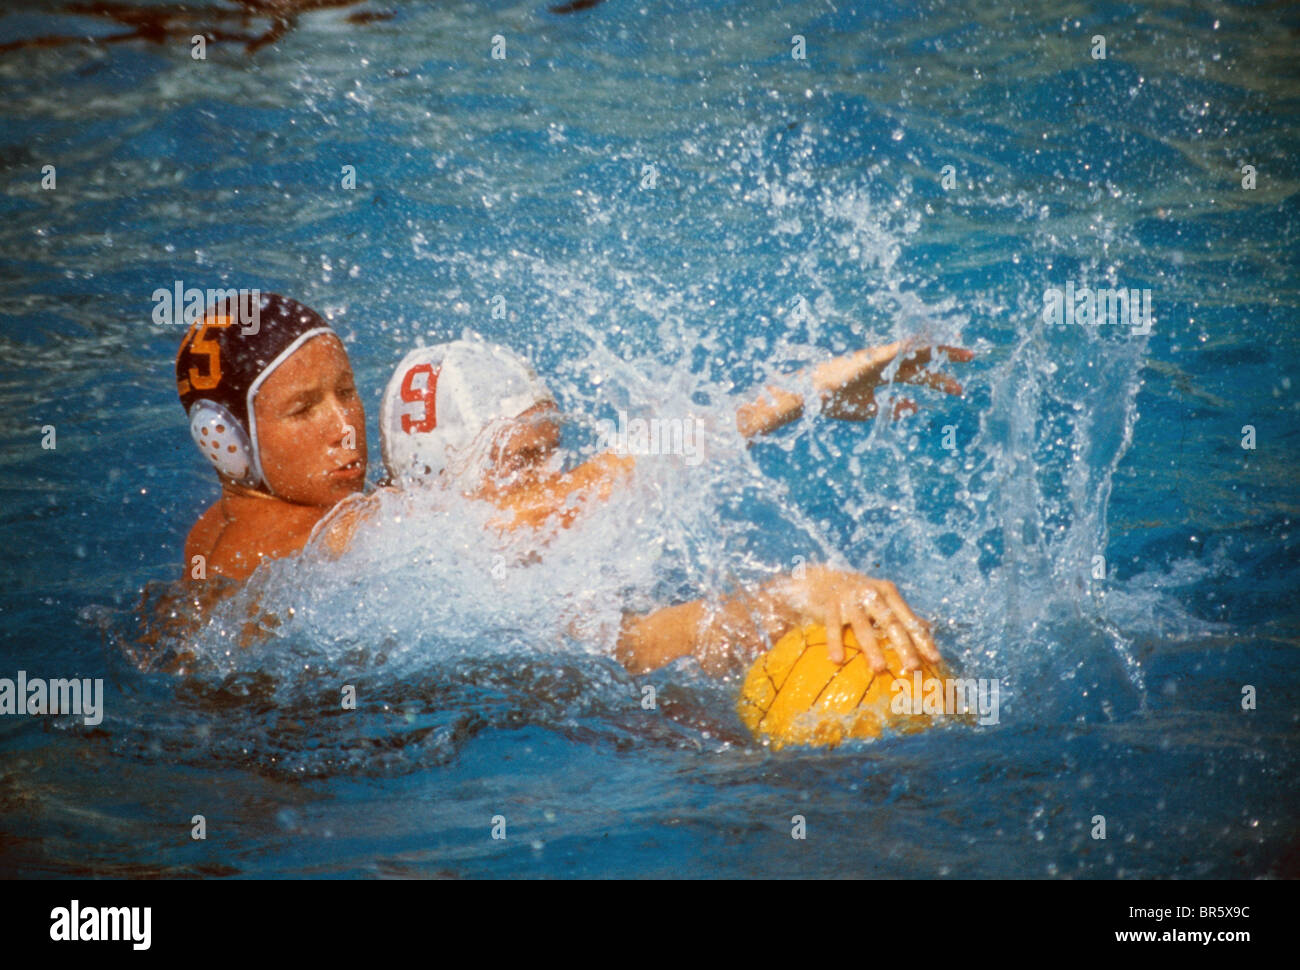 High school water polo player team ball splash swim pool charge aggressive stop prevent - Stock Image